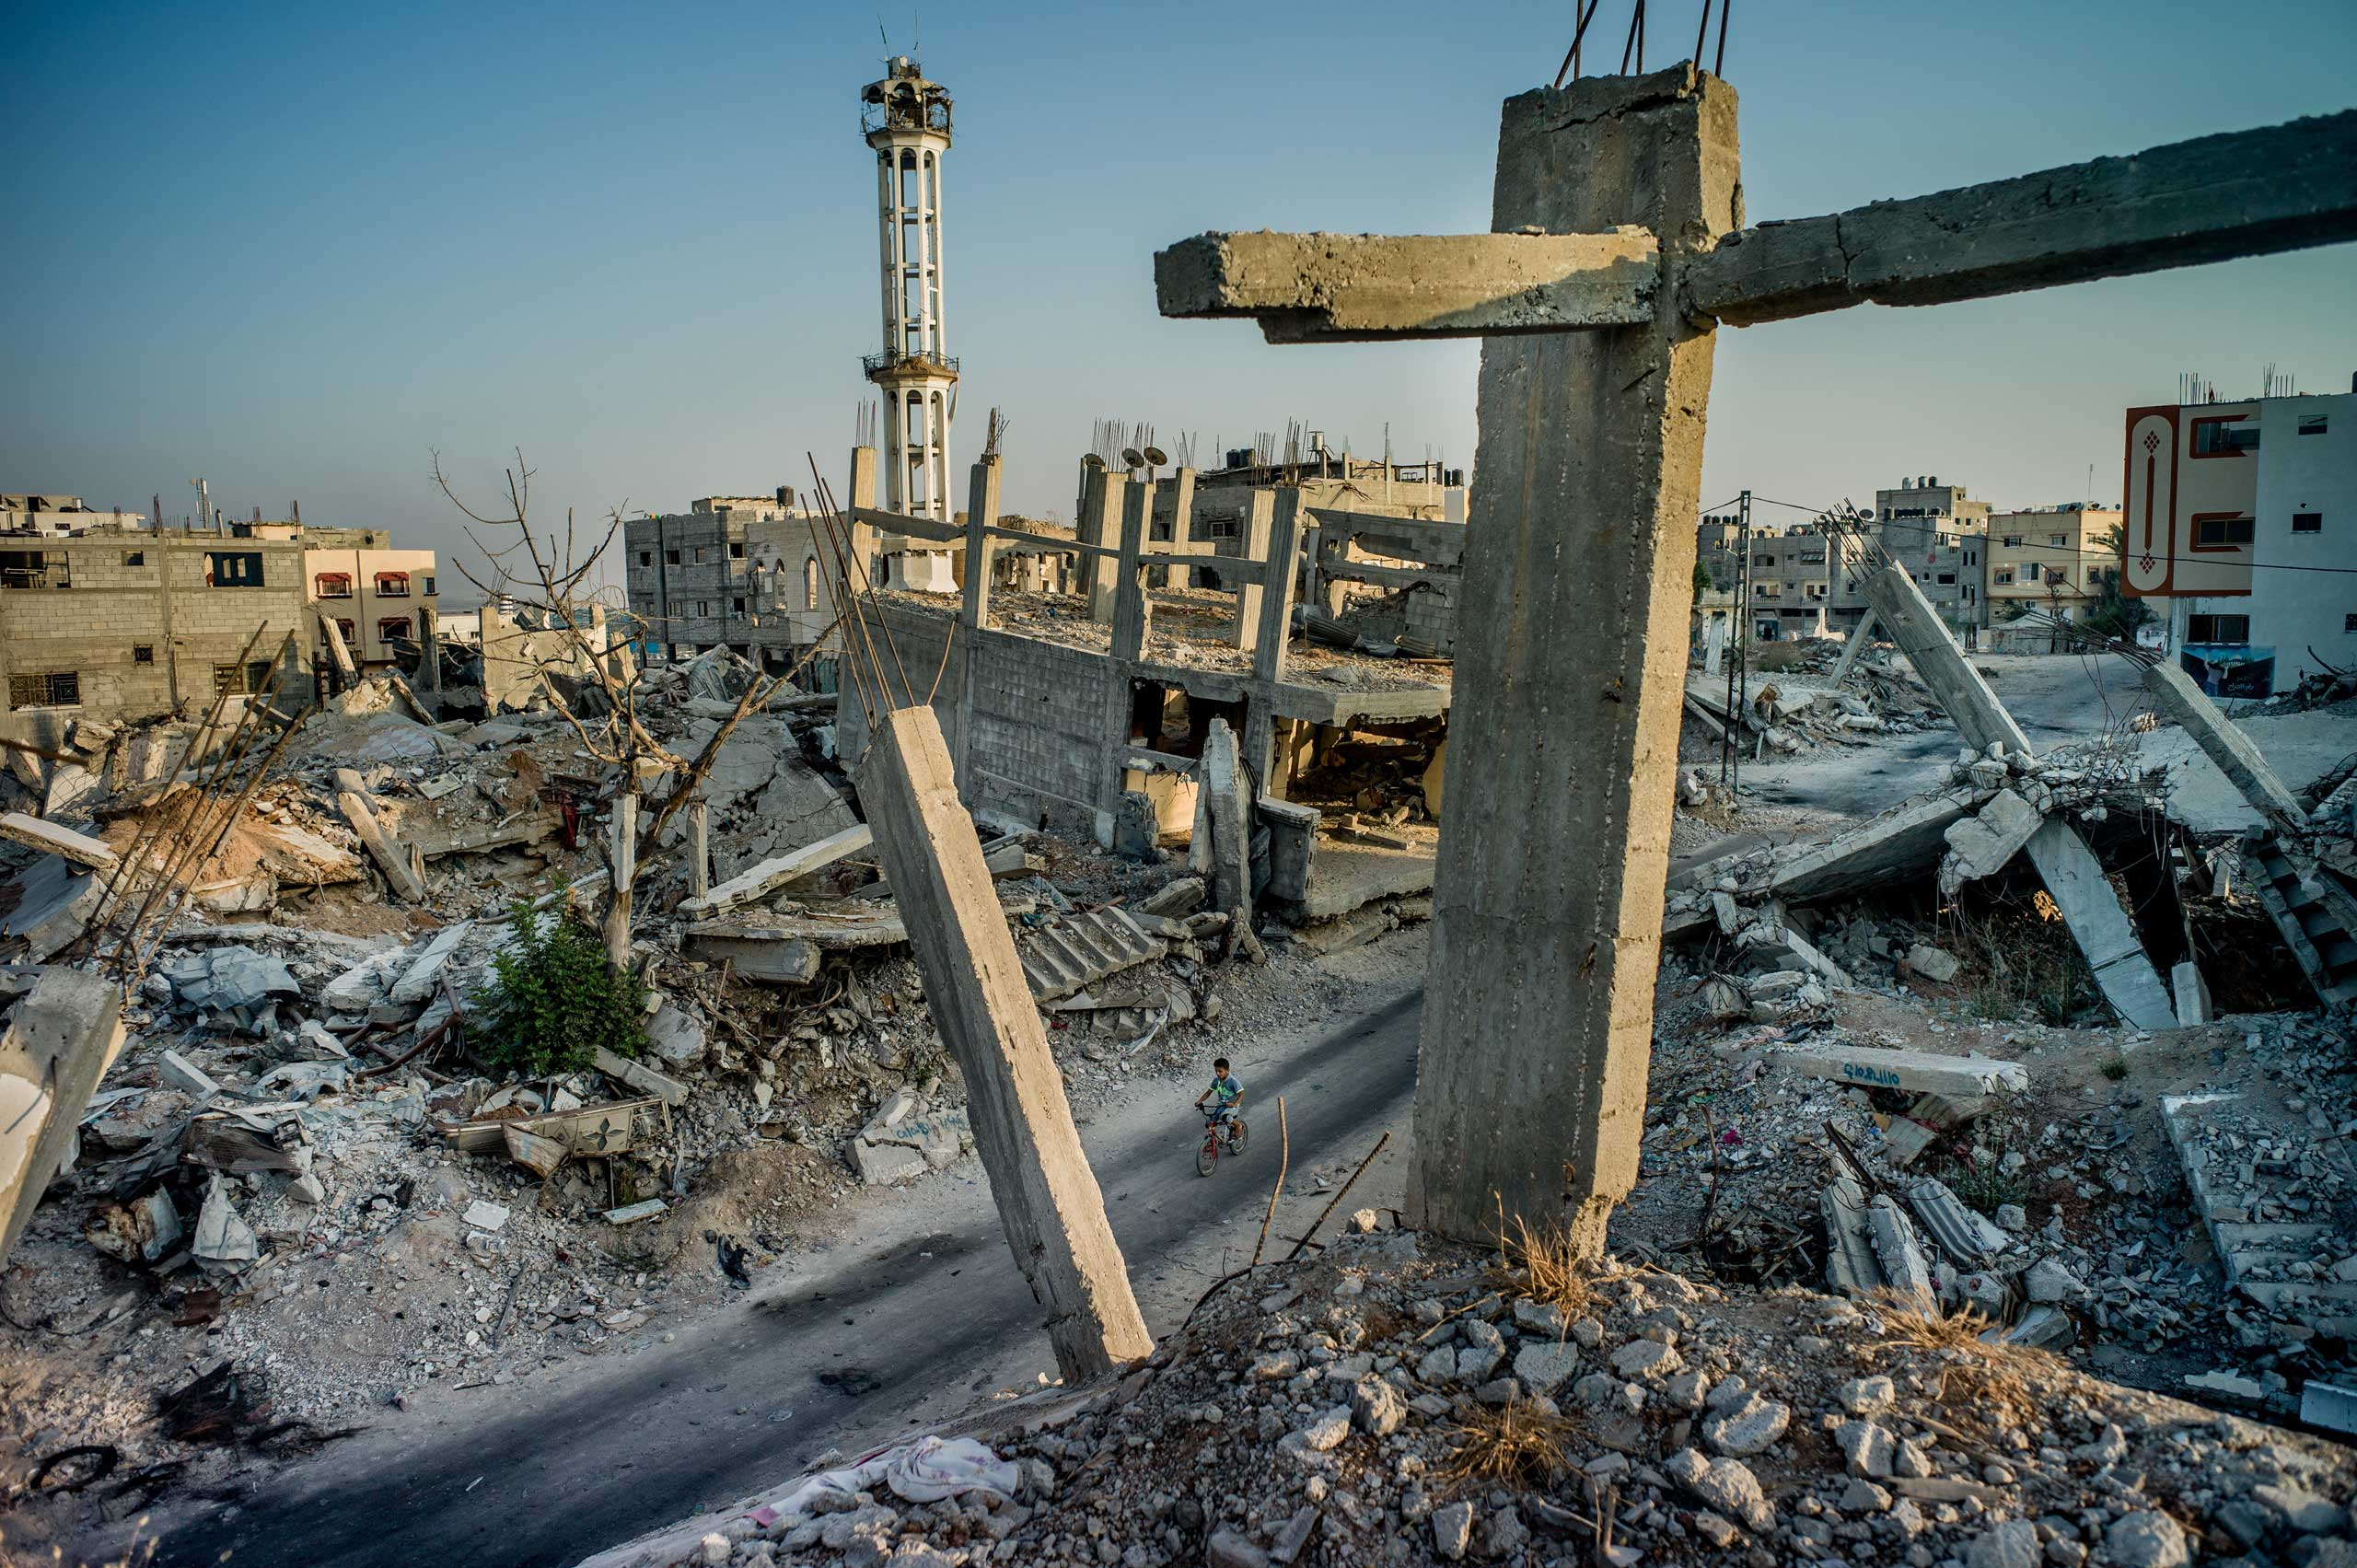 The New York Times: Walking in War's PathShejaiya, the destroyed neighborhood abutting the border fence with Israel, in Gaza City, Gaza Strip, on Aug. 1, 2015.